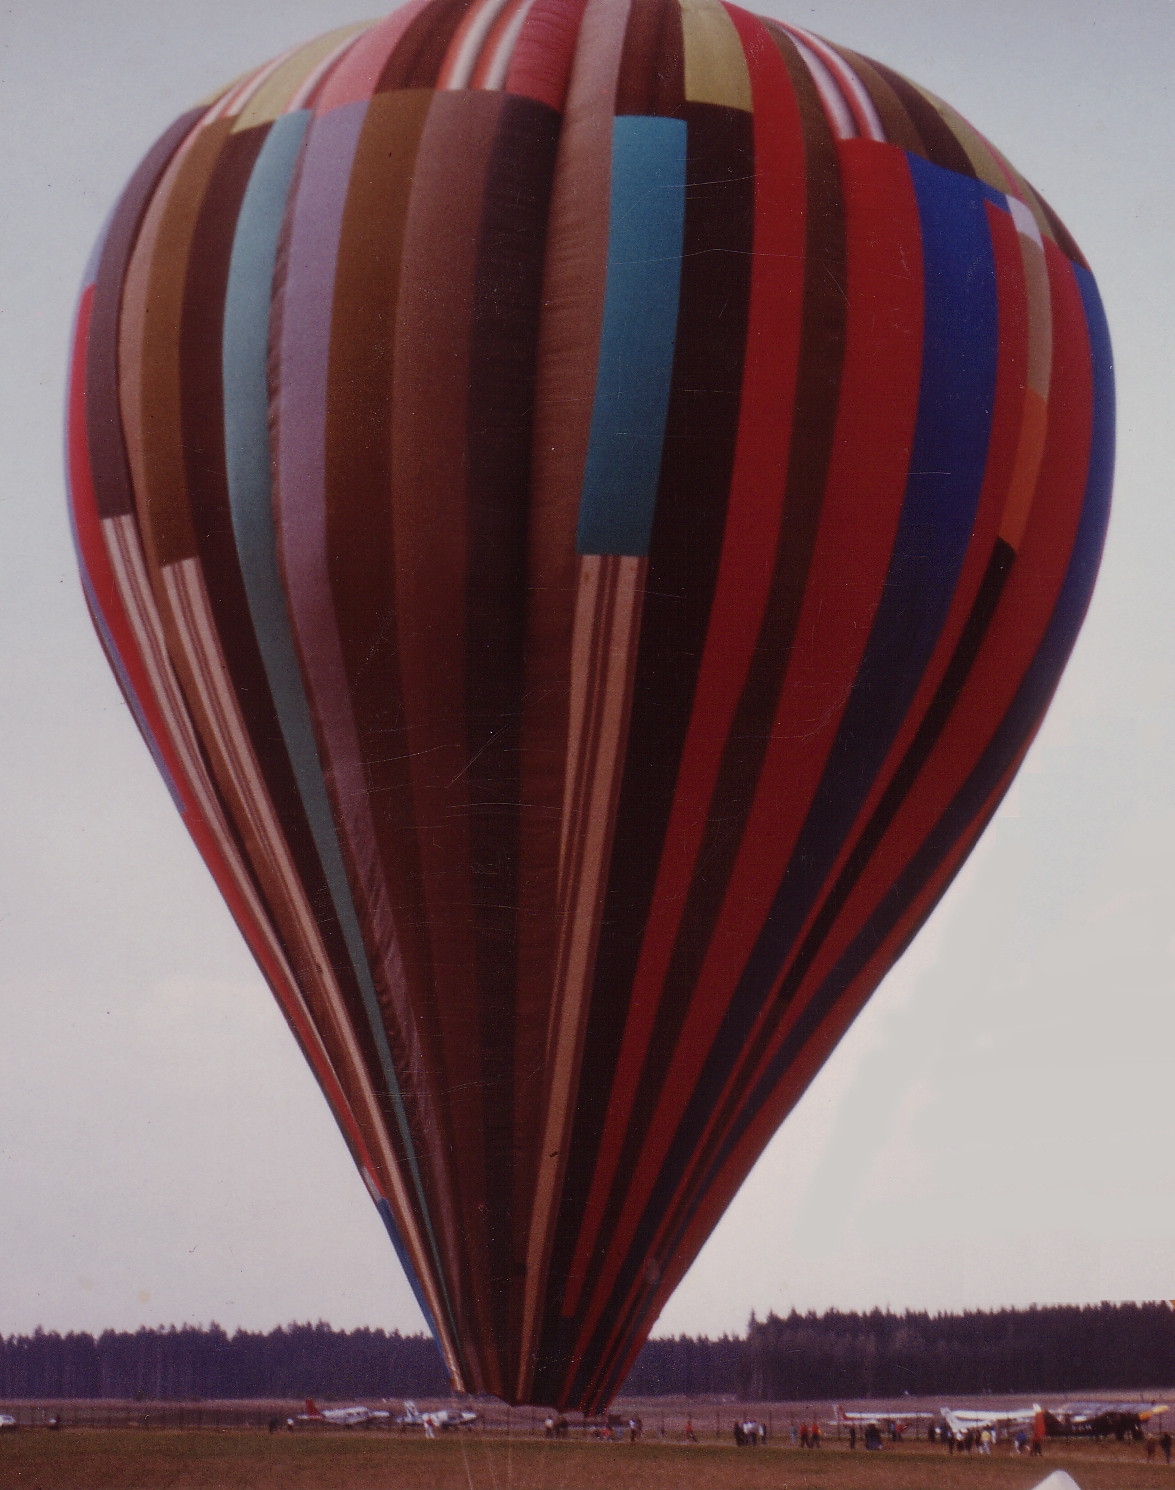 Today in history… intrepid escape by hot air balloon!